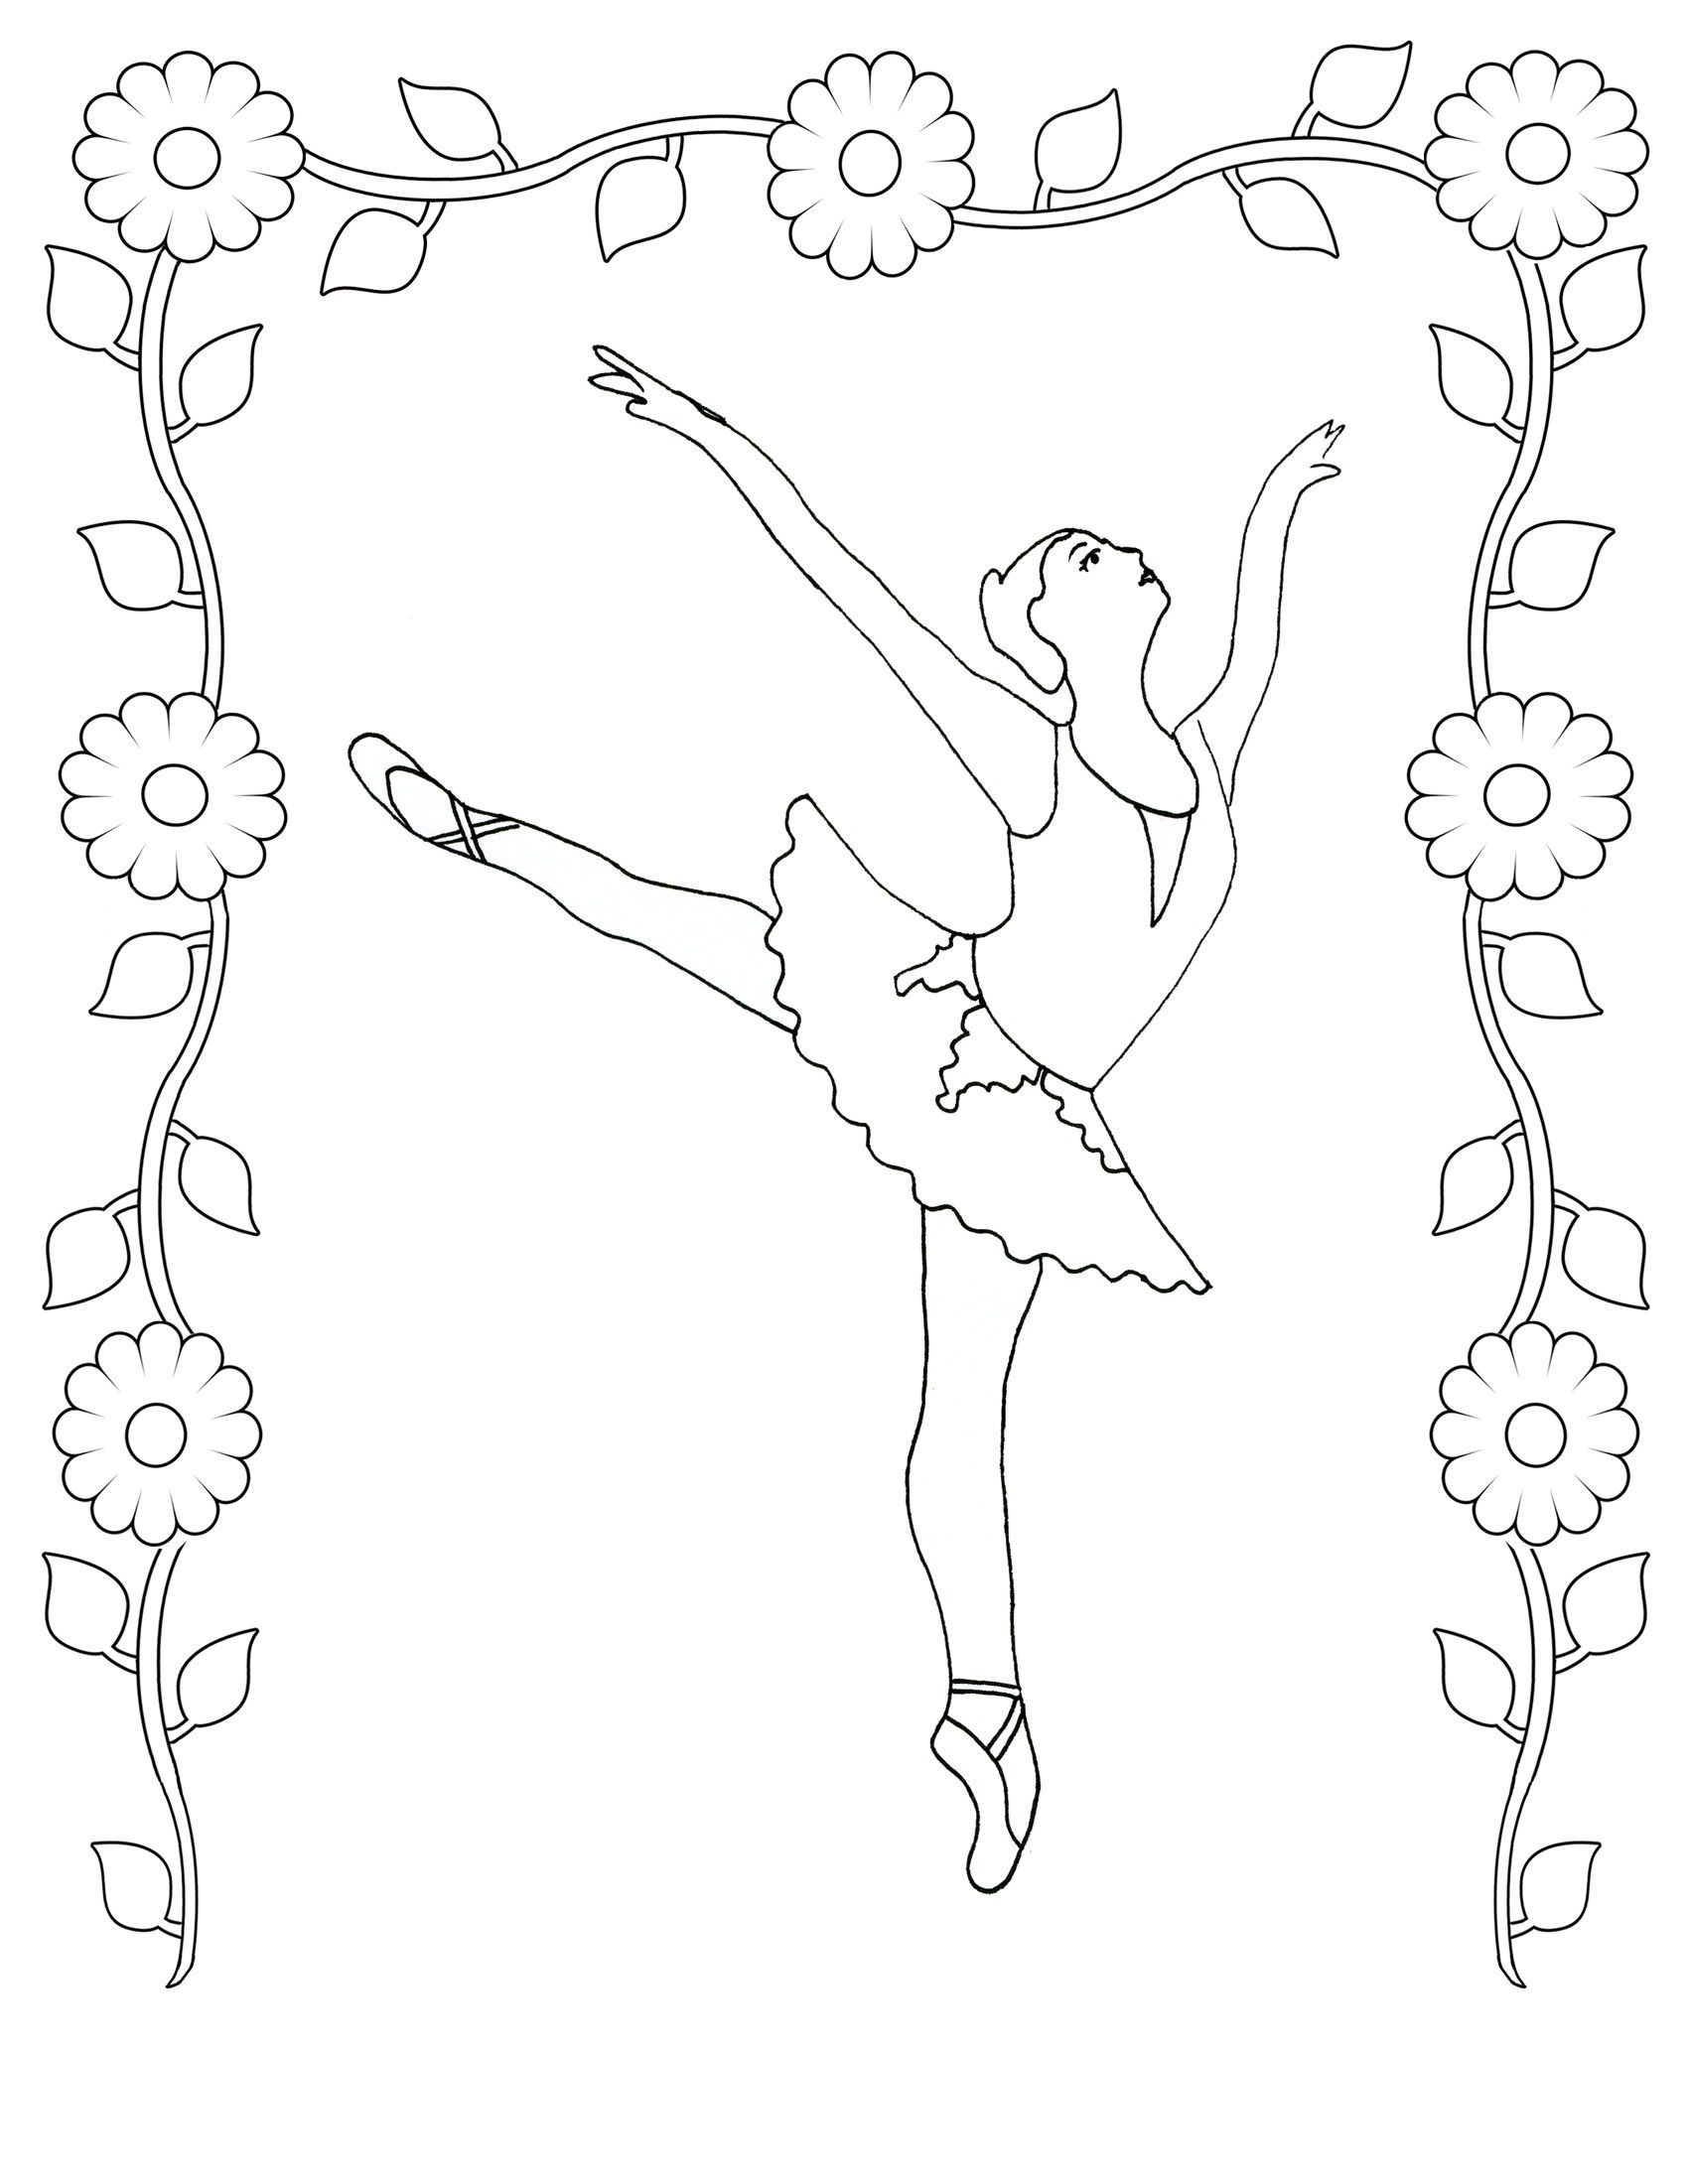 Preschool coloring games online free - Jazz Dance Coloring Pages For Kids